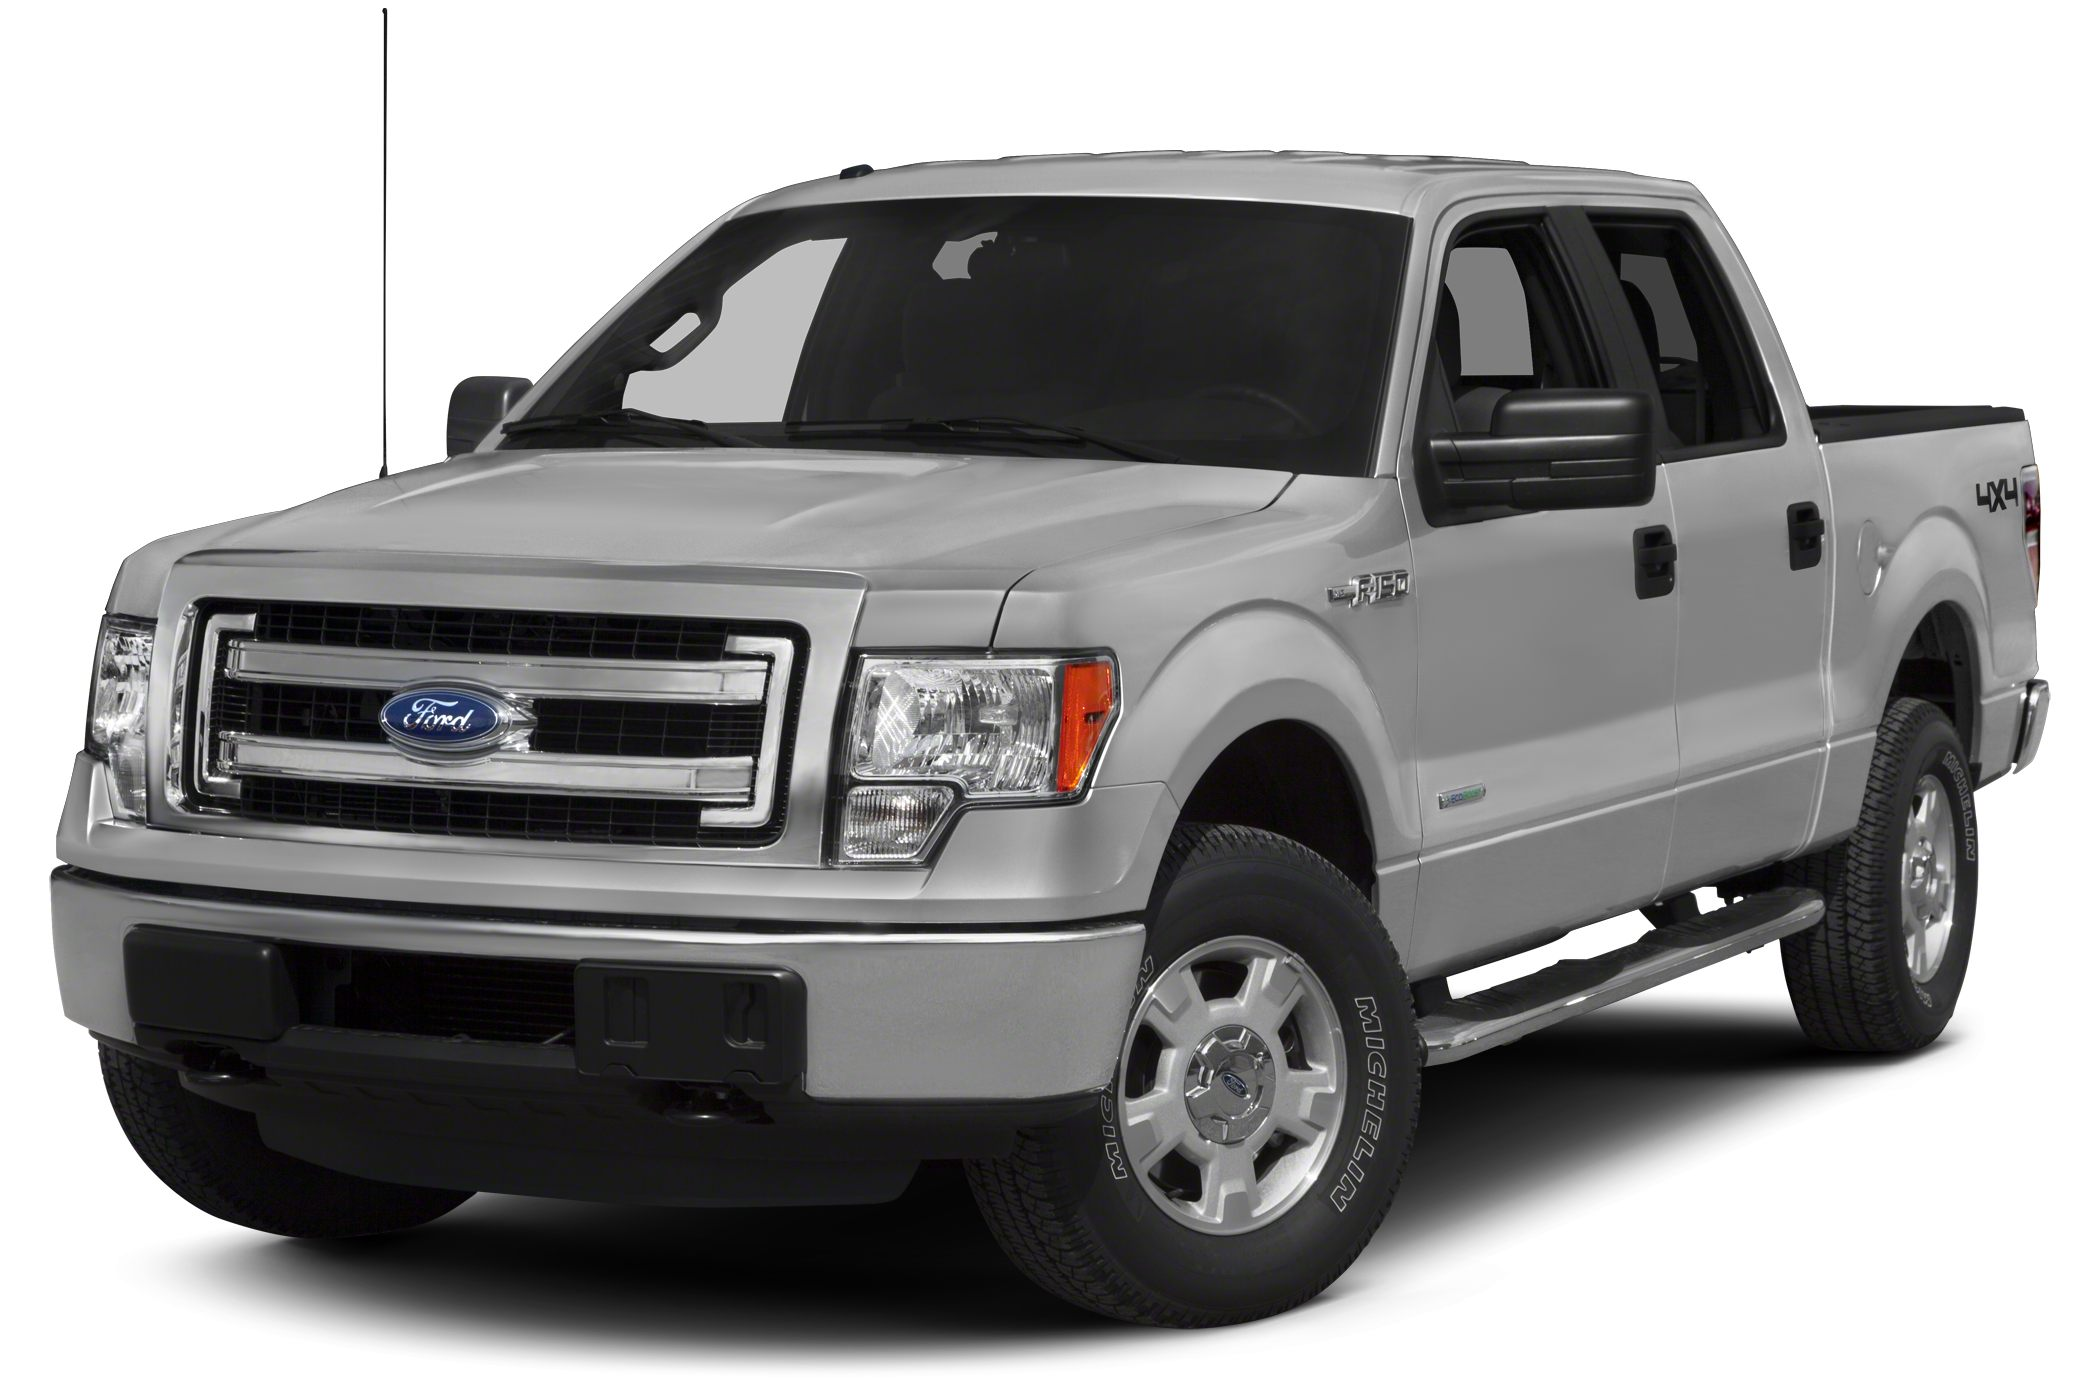 2013 Ford F-150  Auto Check 1 Owner and Ford Certified Pre-Owned F-150 XLT 4D SuperCrew and 18